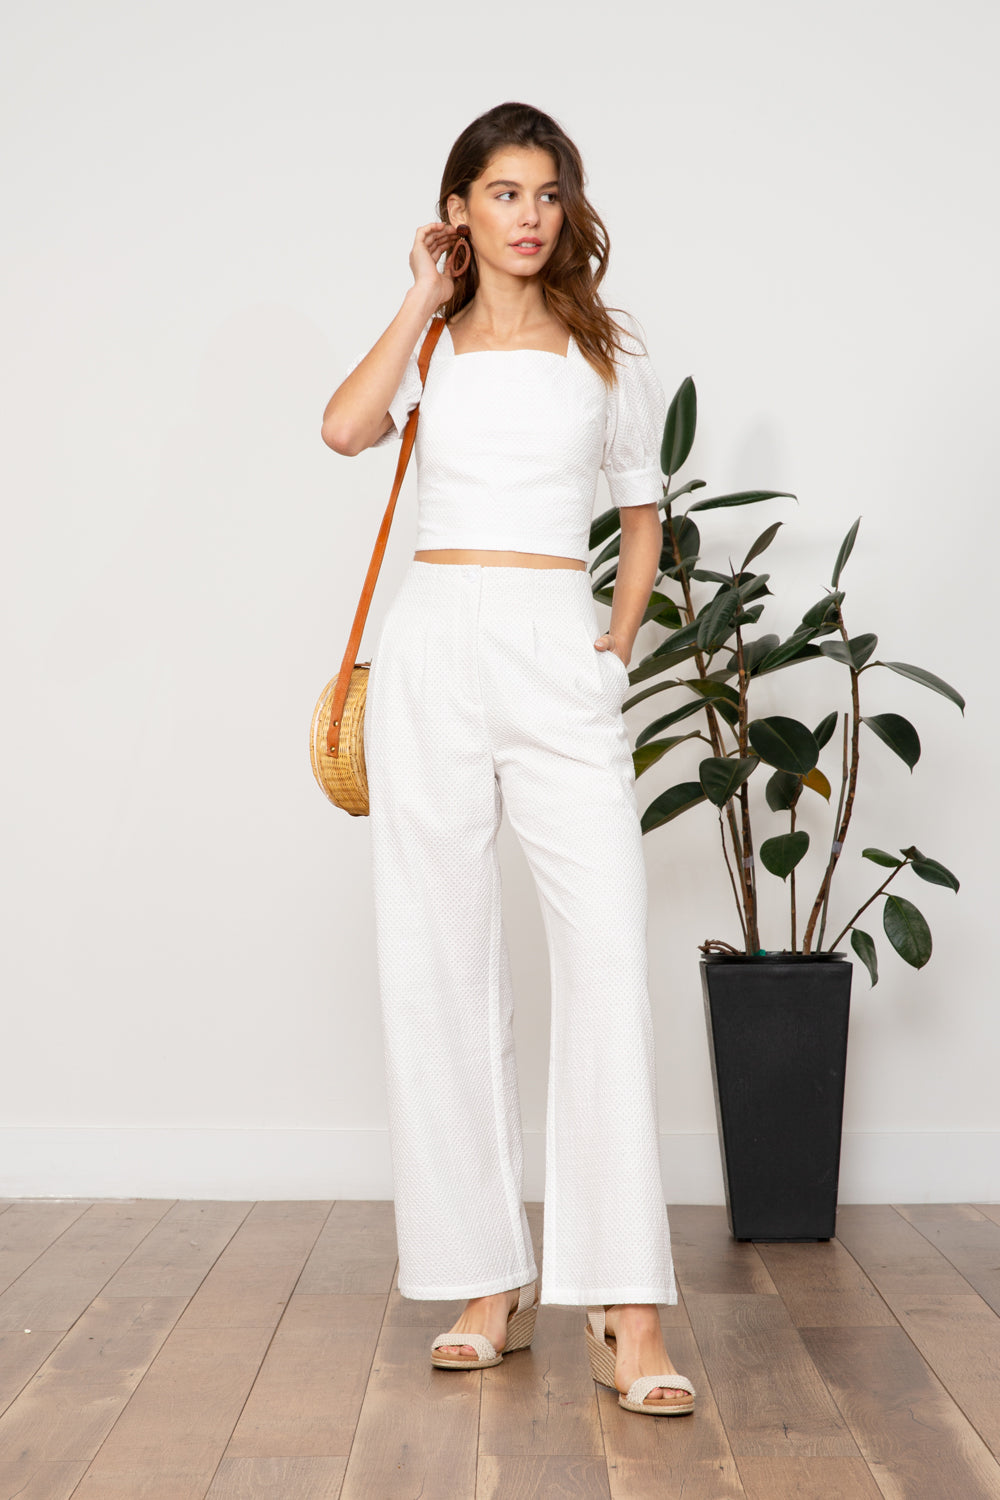 LUCY PARIS - Emmy Pant